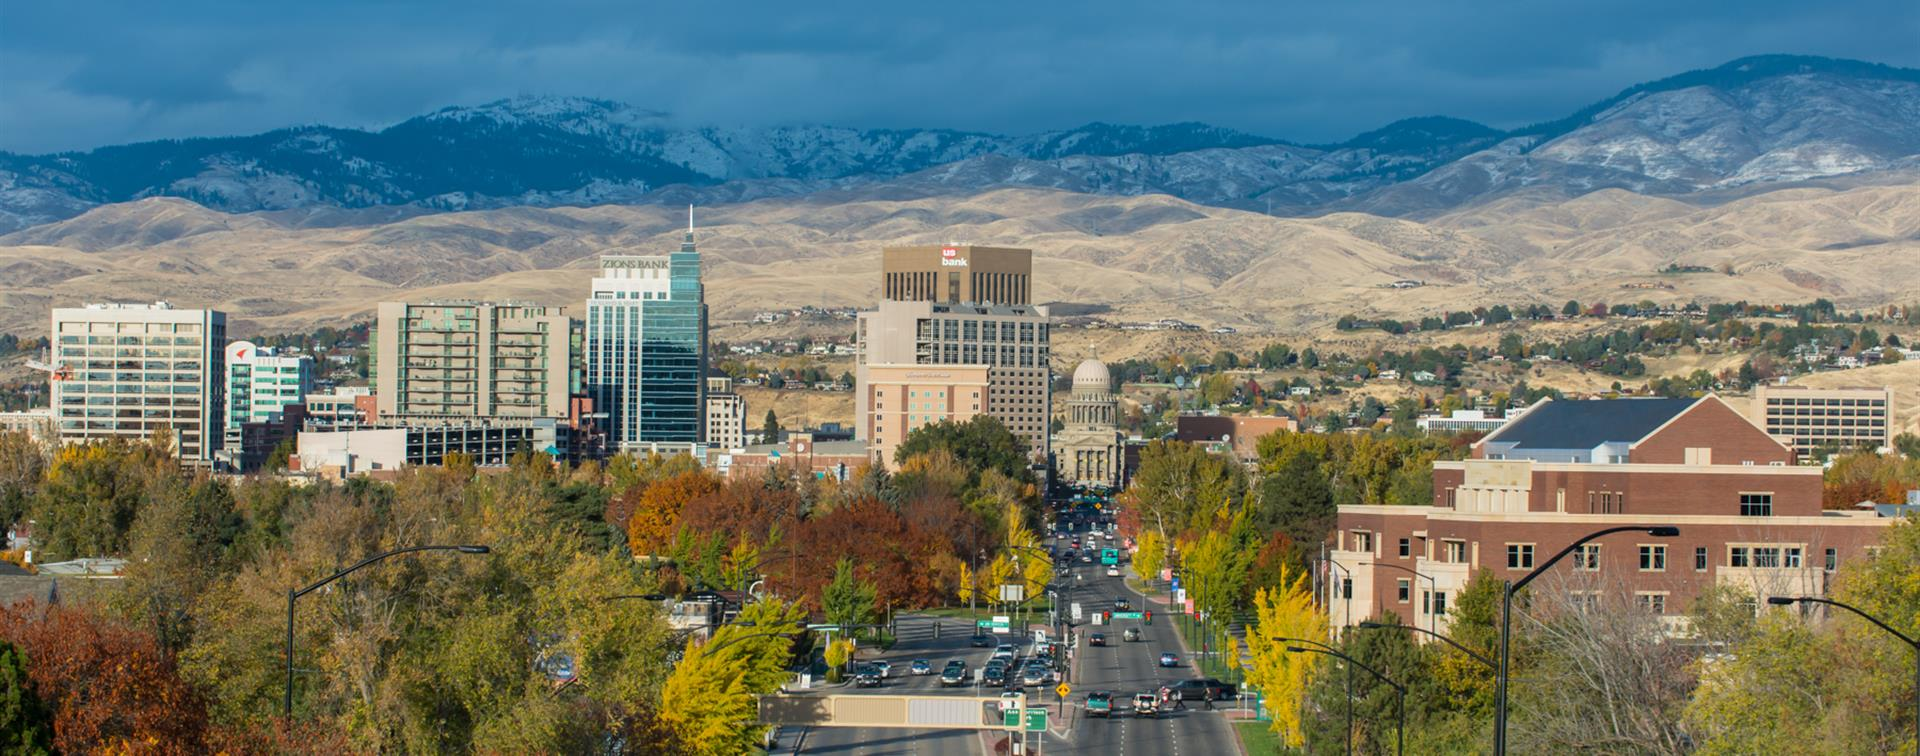 Boise City skyline